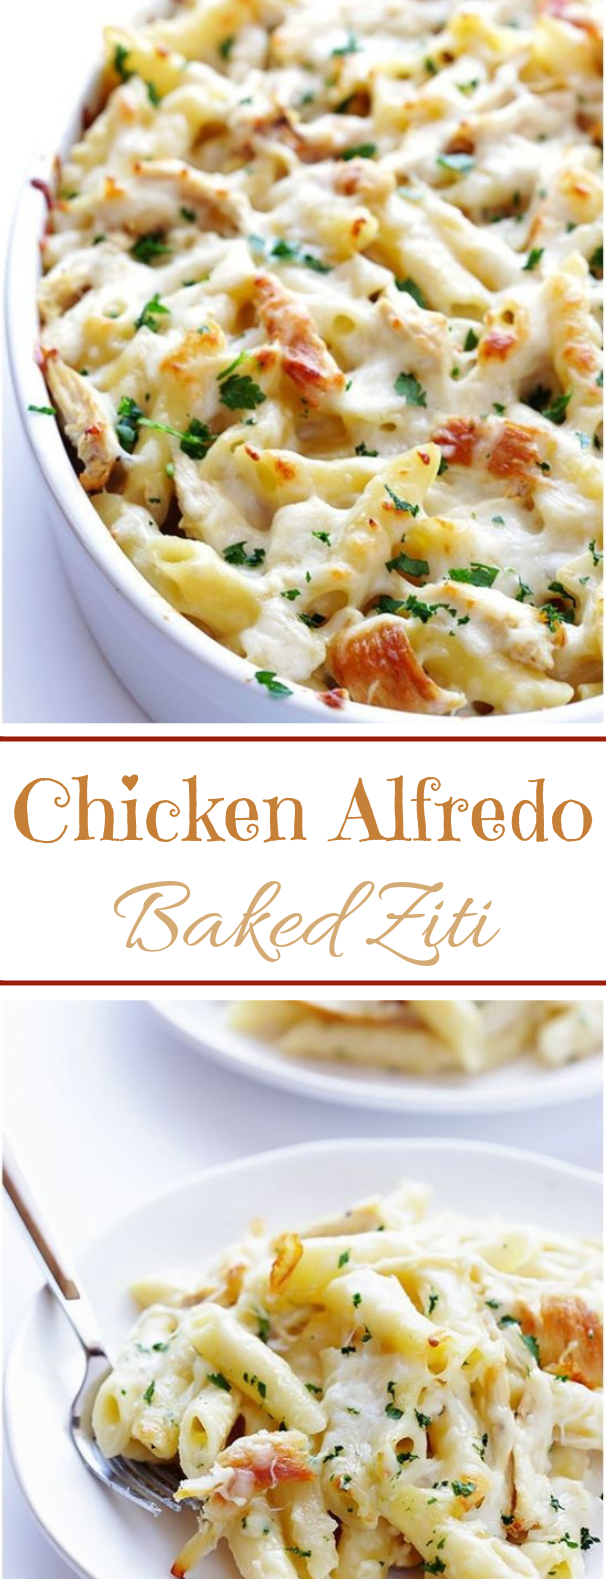 Chicken Alfredo Baked Ziti #pasta #dinner